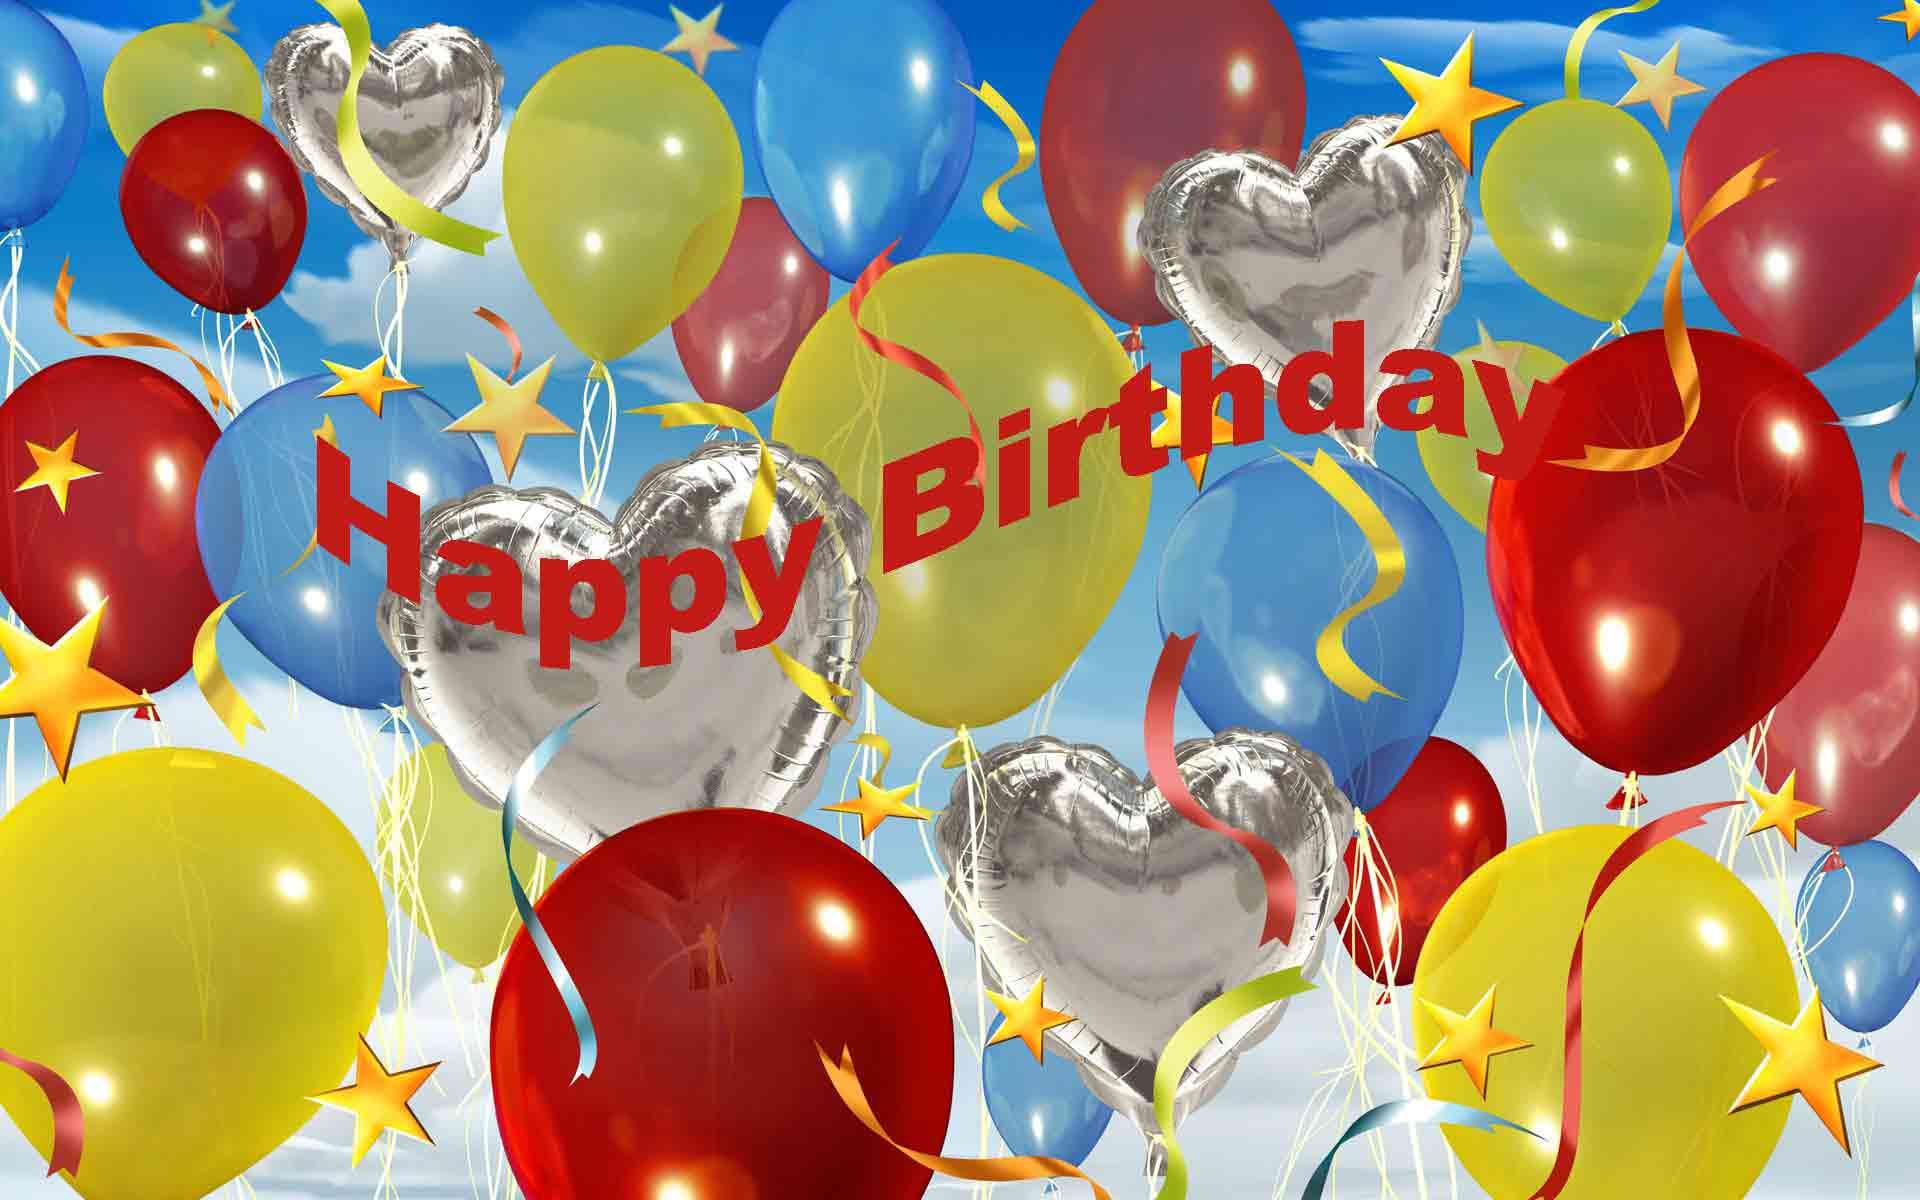 Happy Birthday Images For Her With Love Quotes Ilove Messages